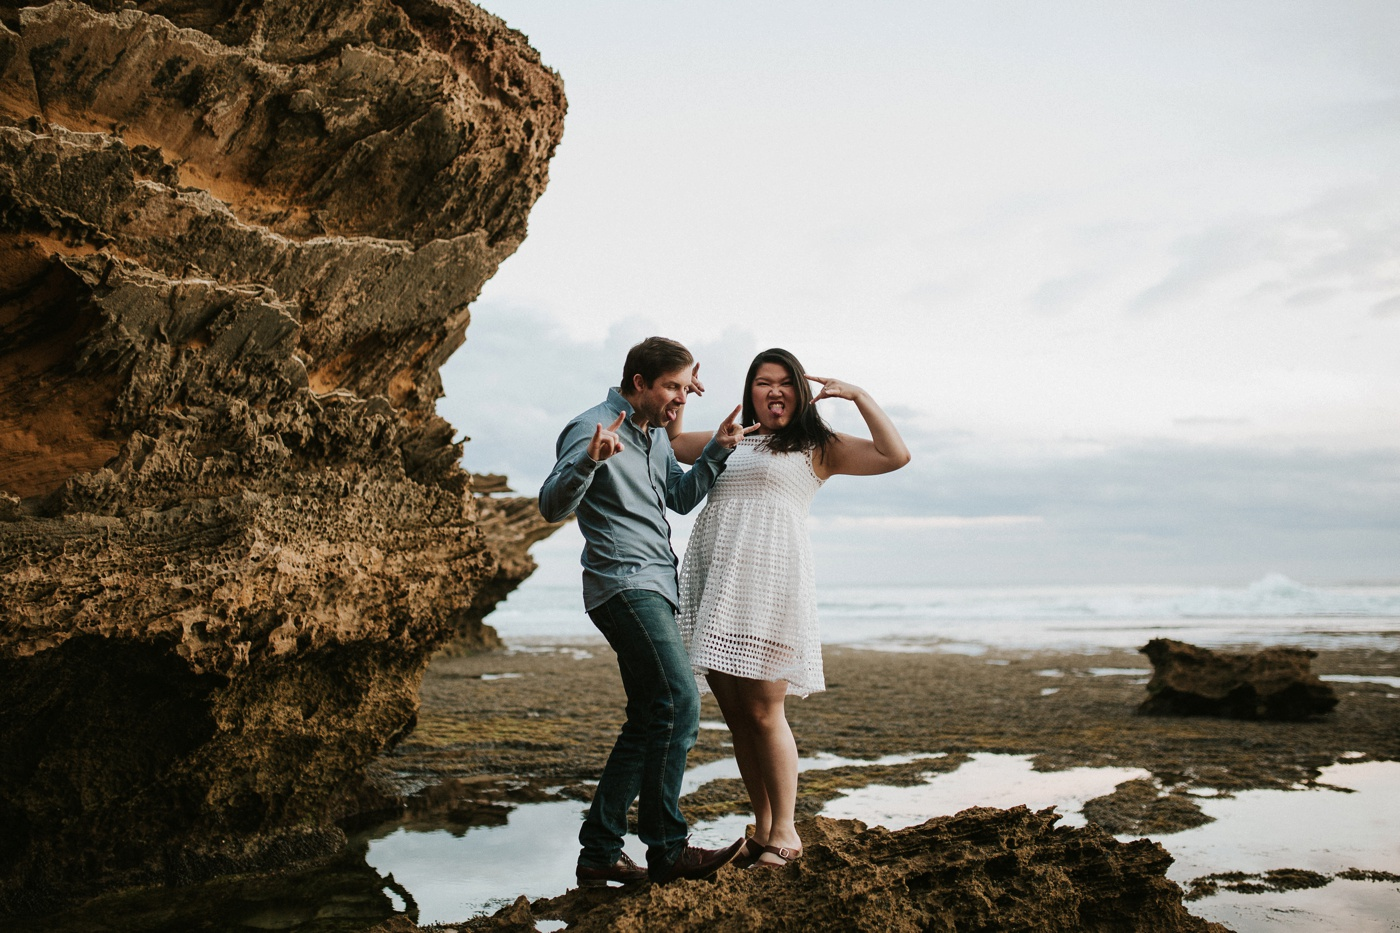 alliedave_mornington-peninsula-back-beach-relaxed-engagement-session_melbourne-candid-wedding-photographer_30